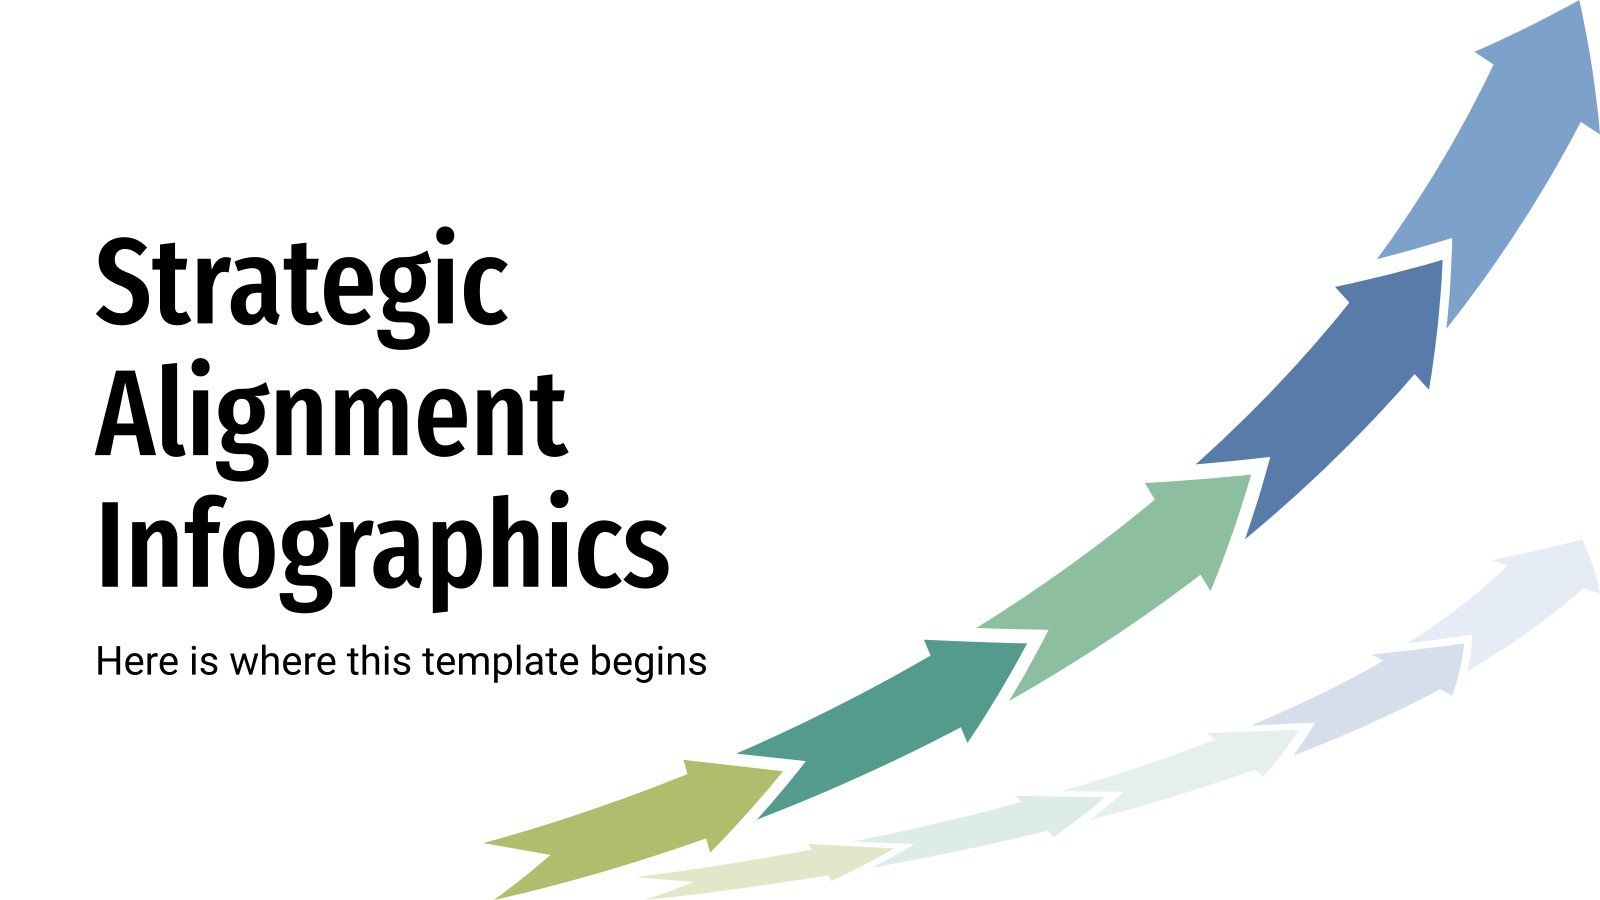 Strategic Alignment Infographics presentation template